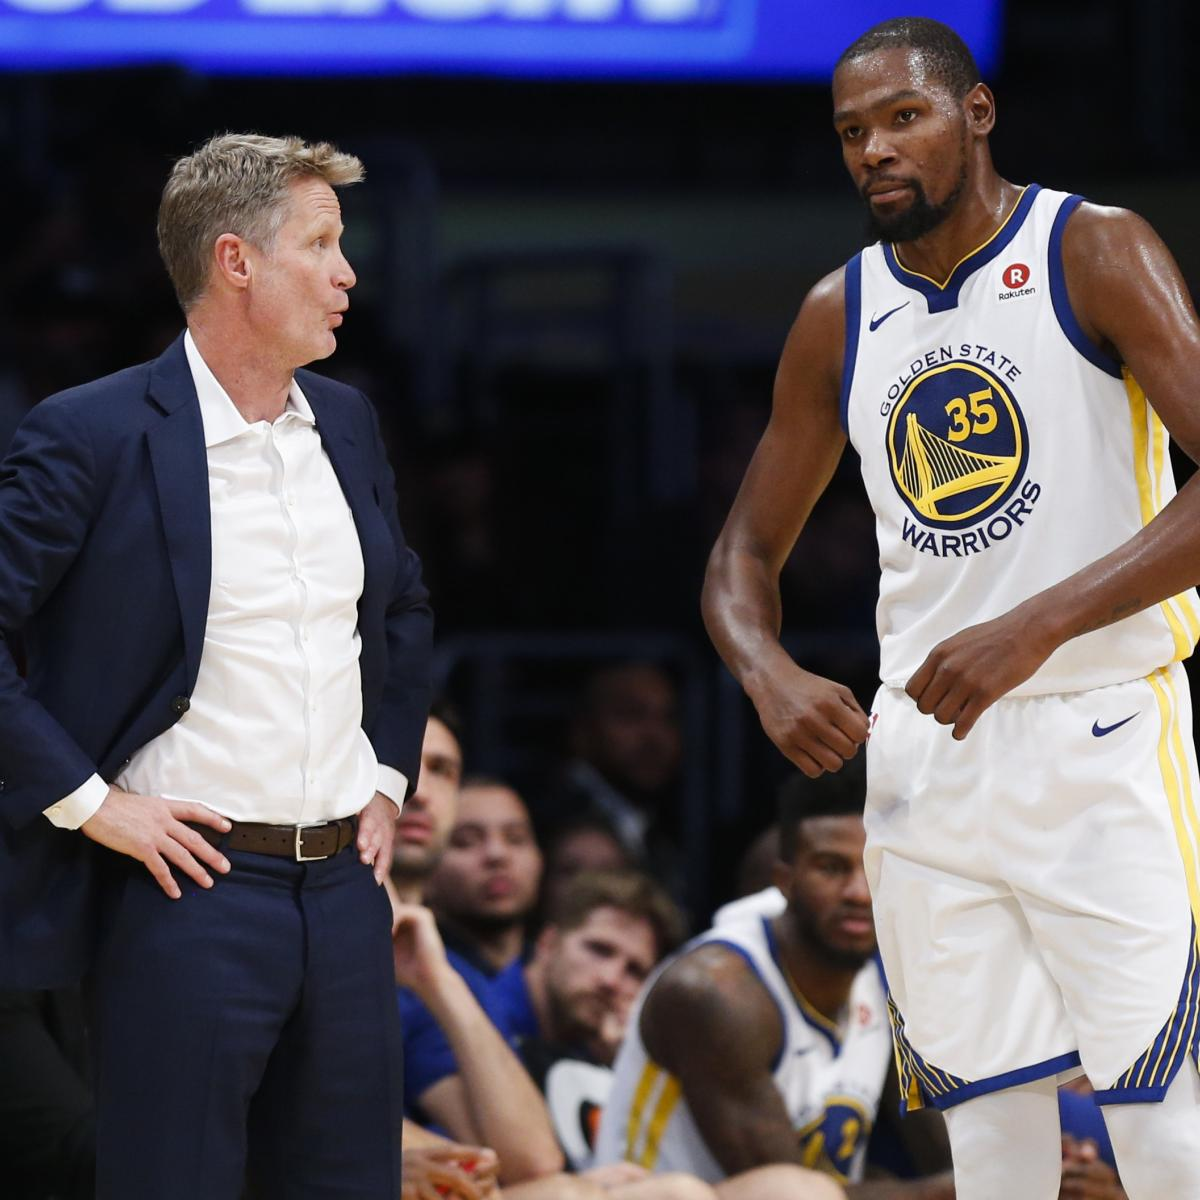 Warriors Come Out To Play Bleacher Report: Steve Kerr On Kevin Durant Lashing Out At Media: We're